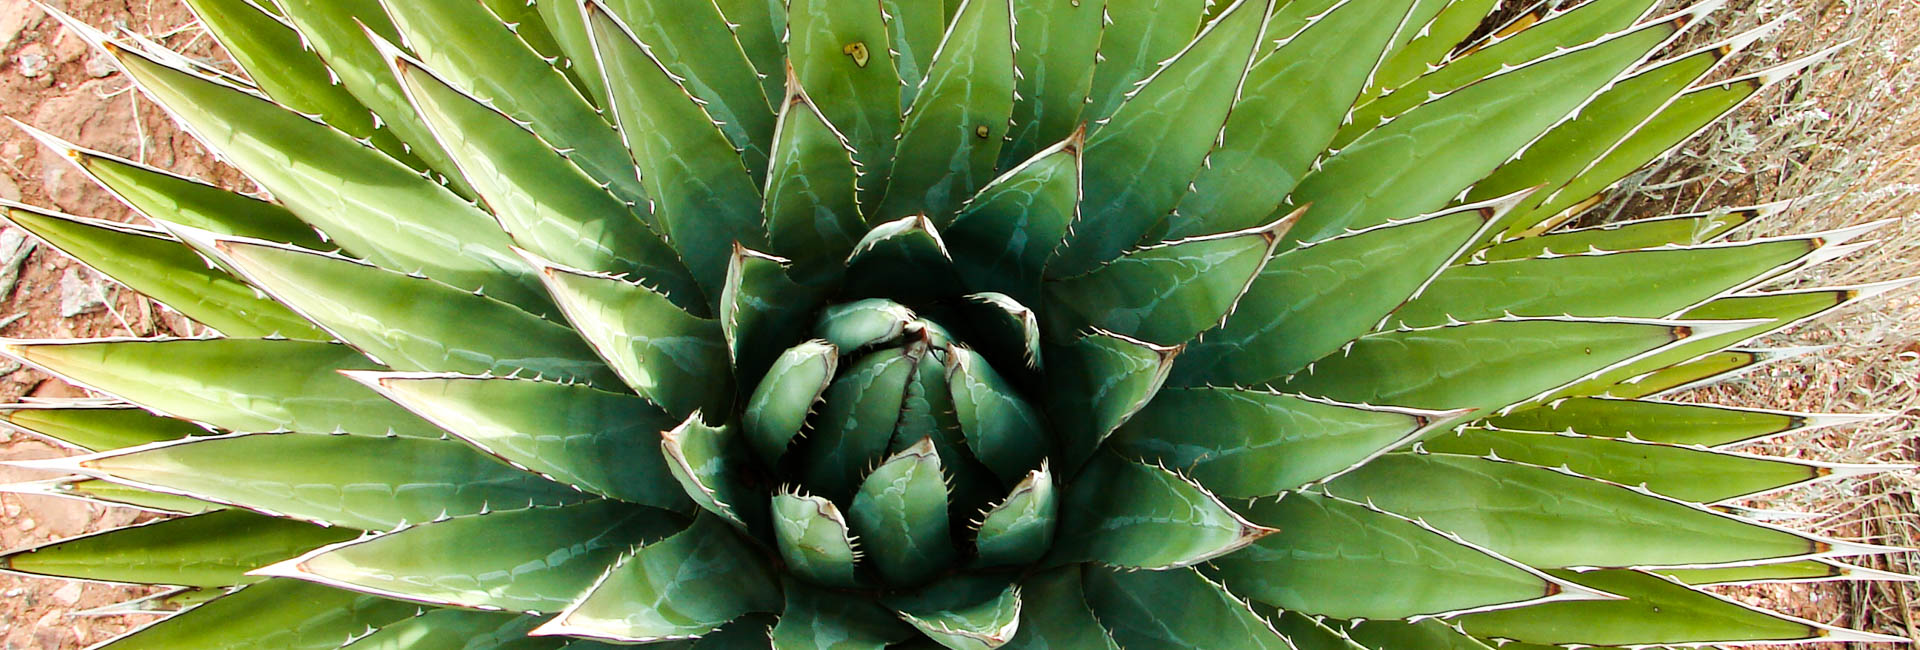 Agave in Prescott National Forest